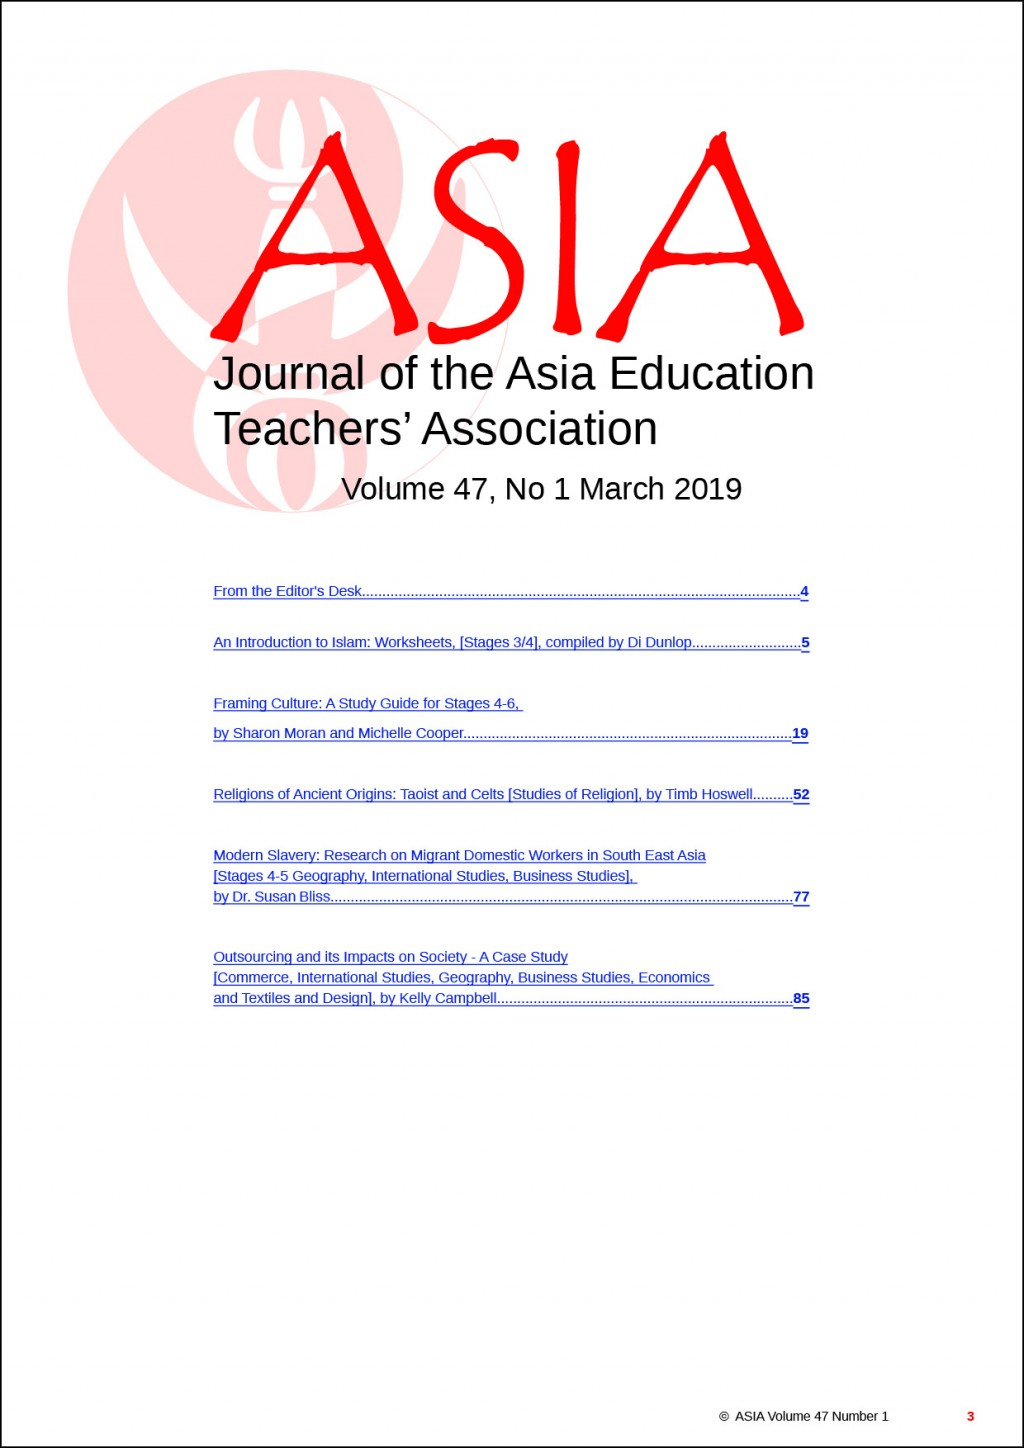 028 Free Download Researchs On Education Contents  Asiajournal Vol47 No1 March2019 Stunning Research PapersLarge